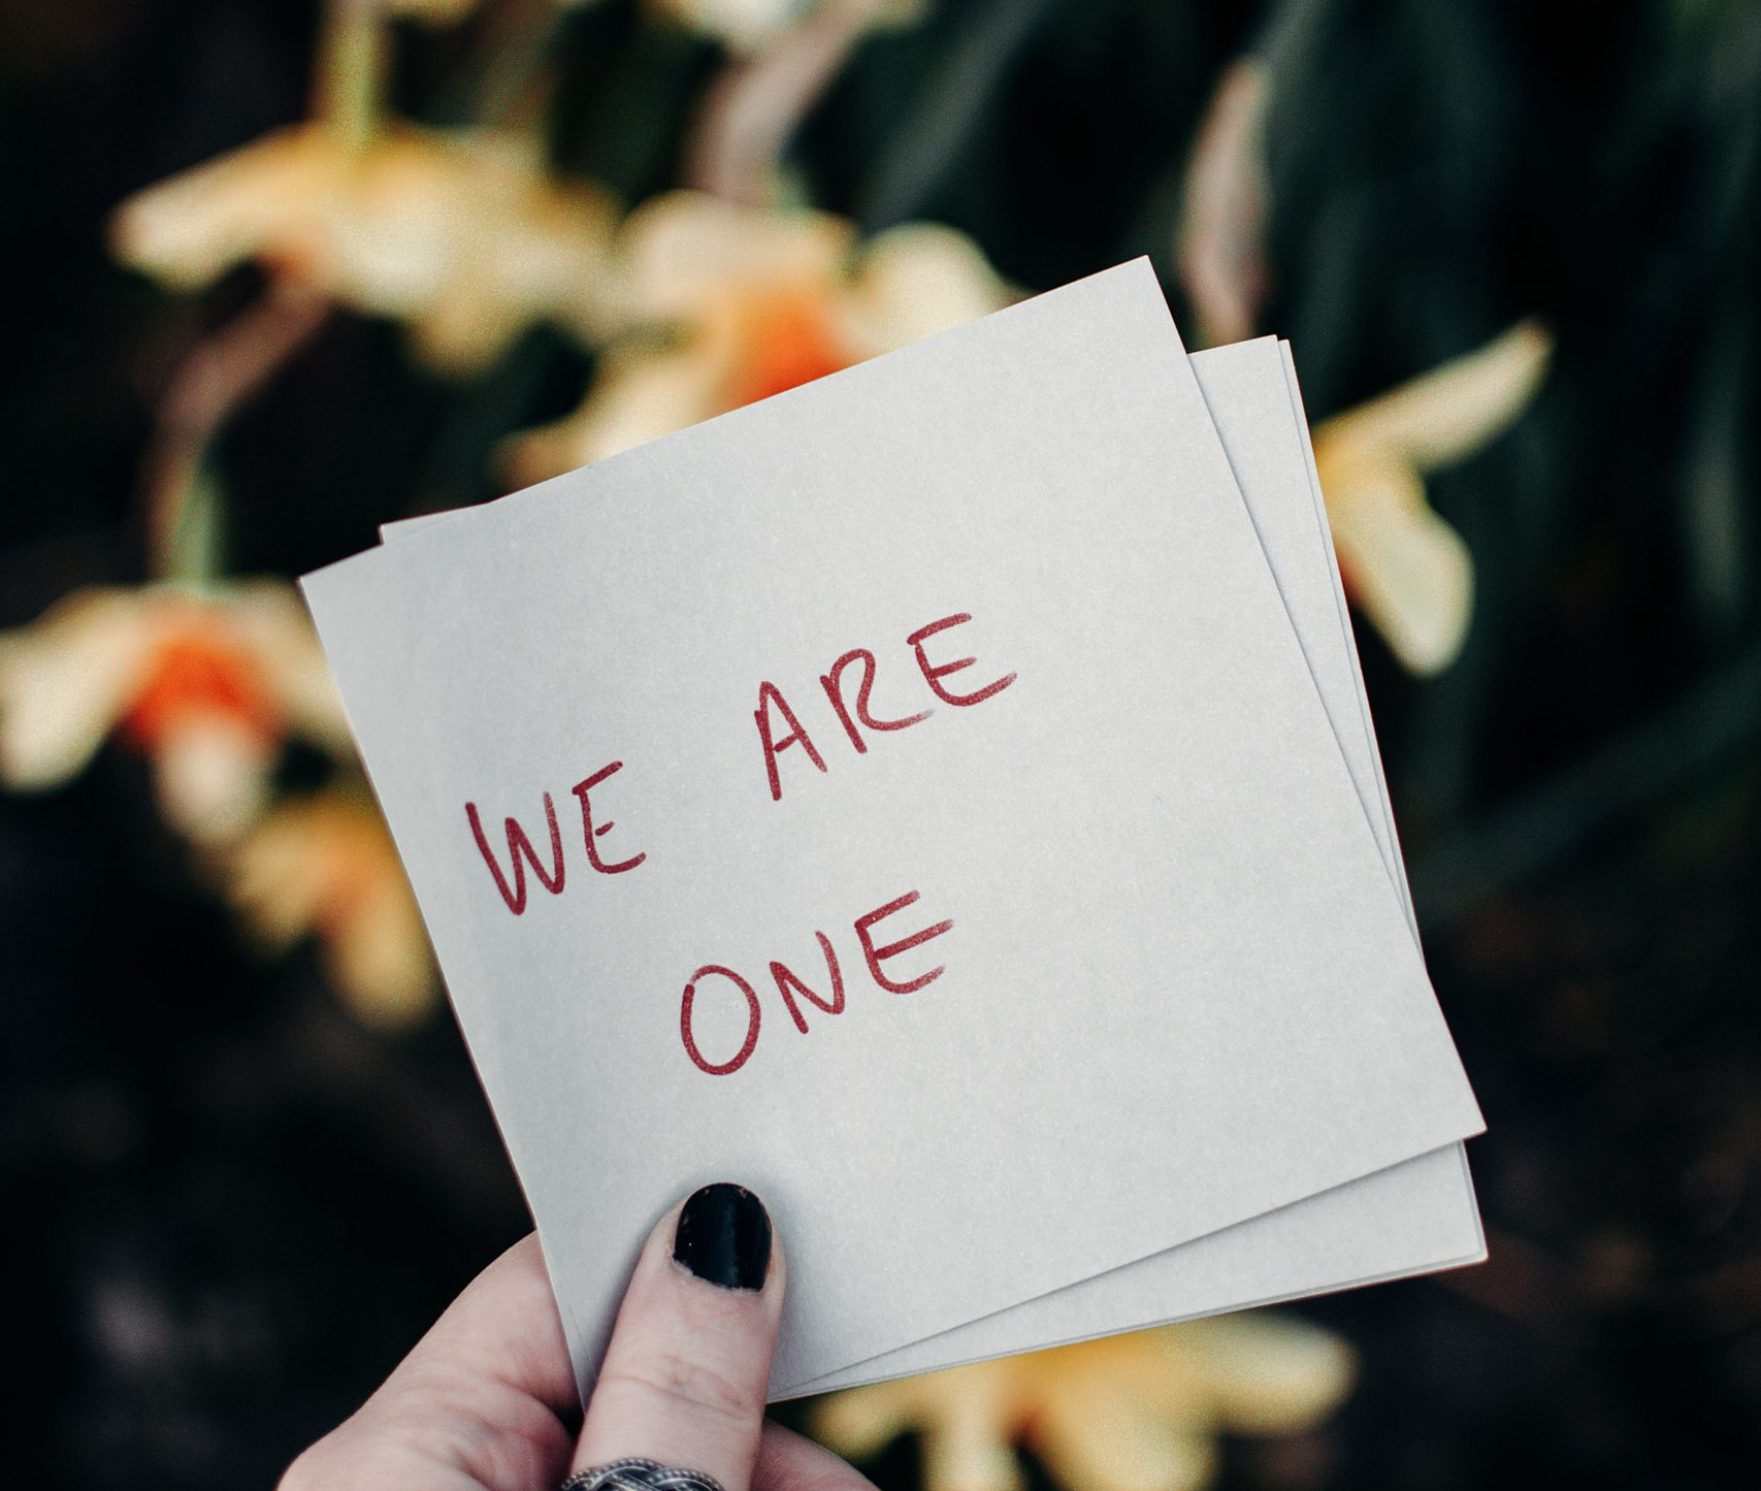 we-are-one-text-on-white-paper-3972467